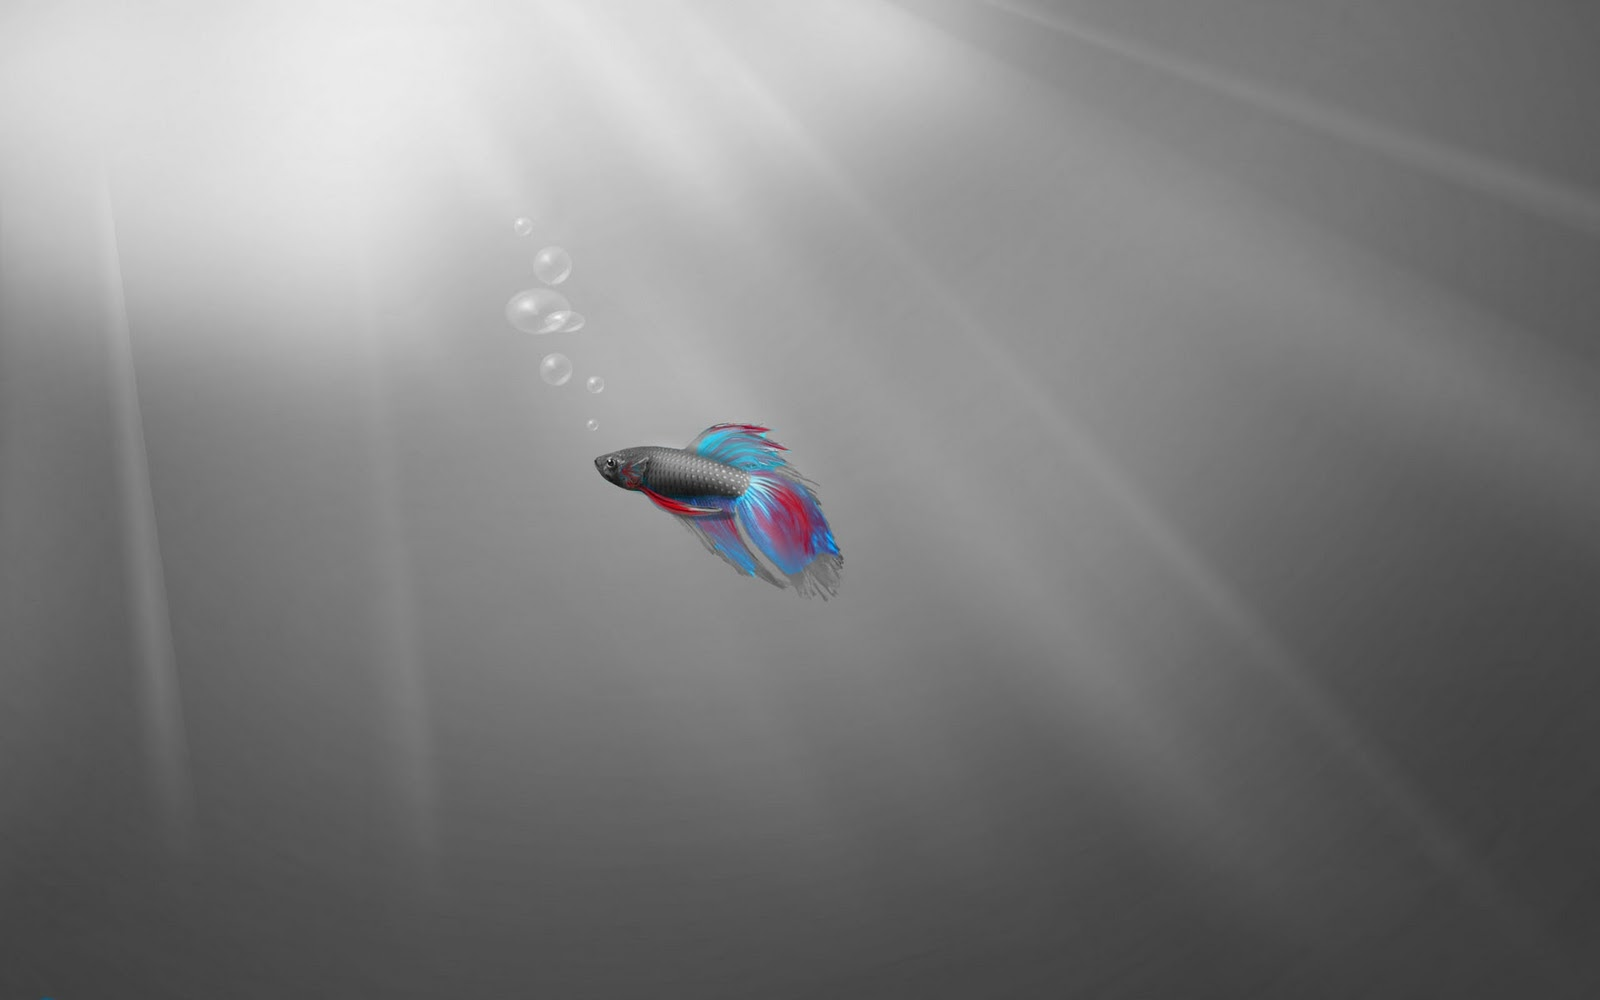 windows 7 wallpapers ~ hd desktop wallpapersgrey windows 7 wallpaper with a guppy fish